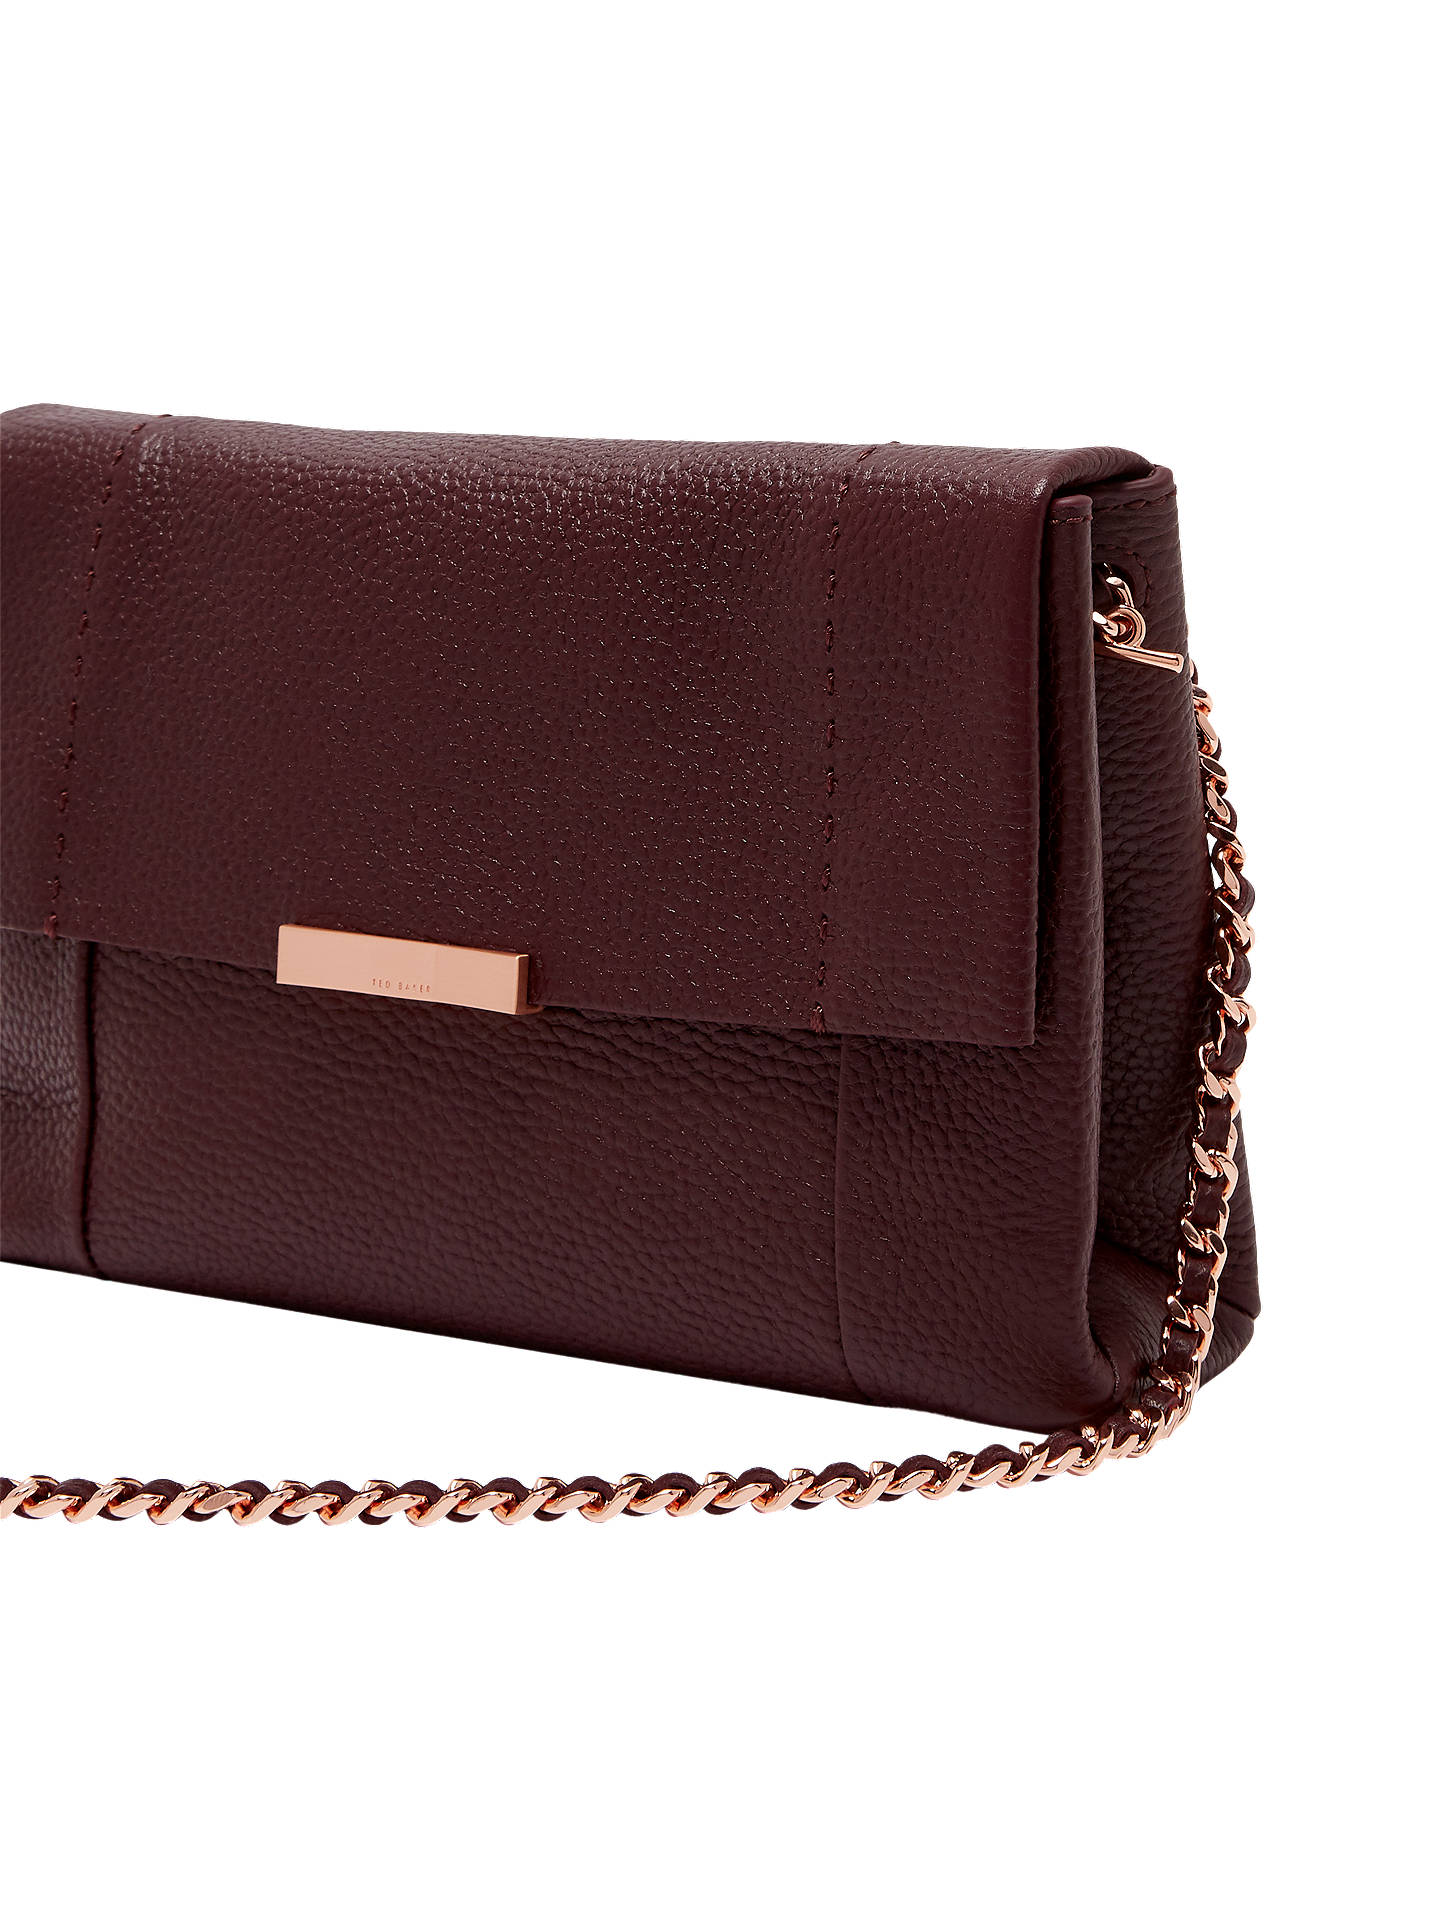 ded62828079c Ted Baker Clarria Leather Cross Body Bag at John Lewis   Partners